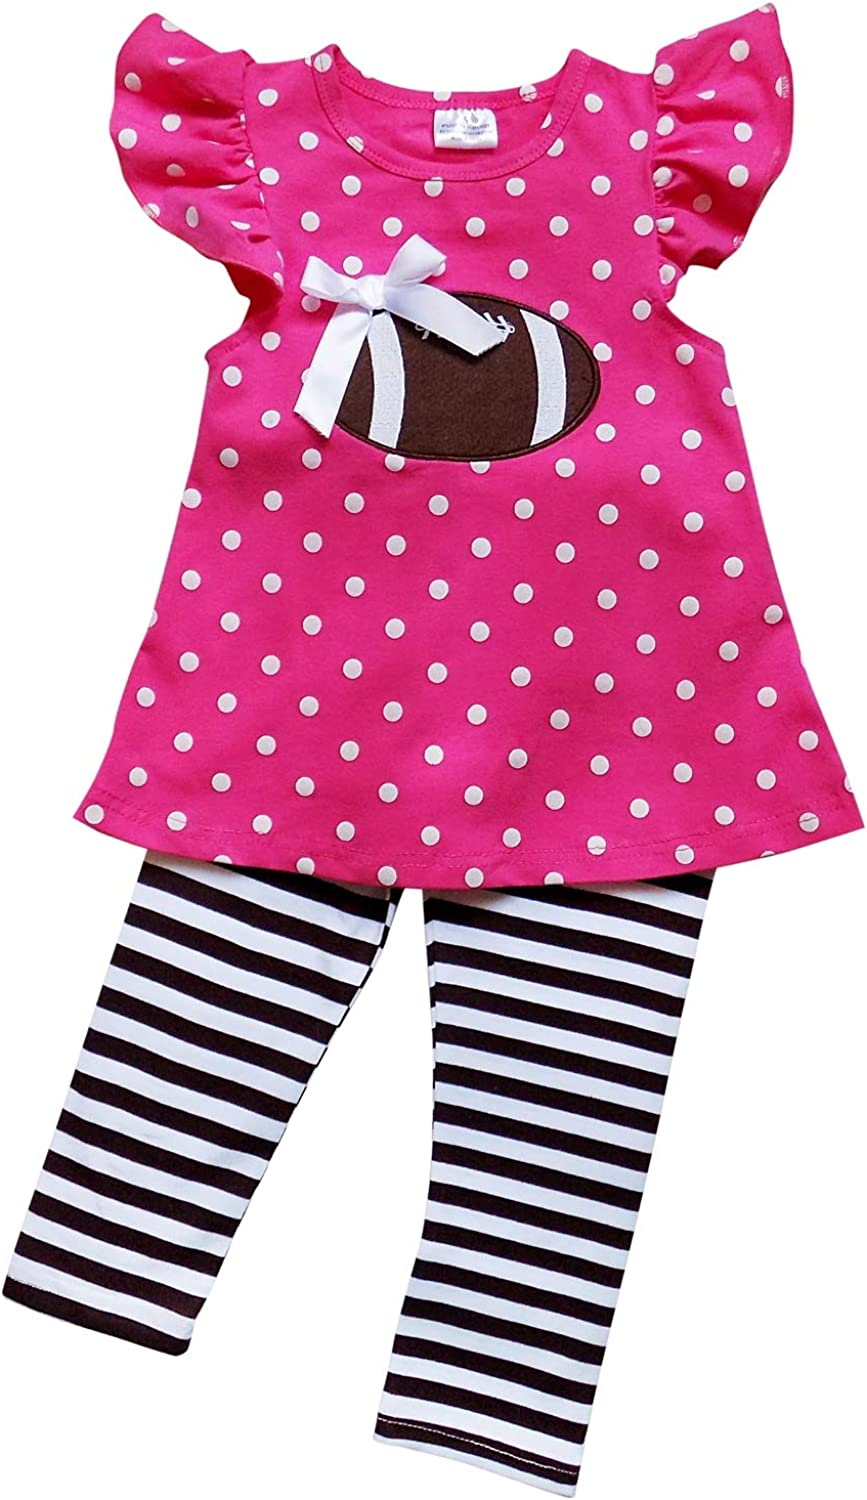 1 or 2 Pc Outfit So Sydney Girls Pink /& Brown Friday Night Football